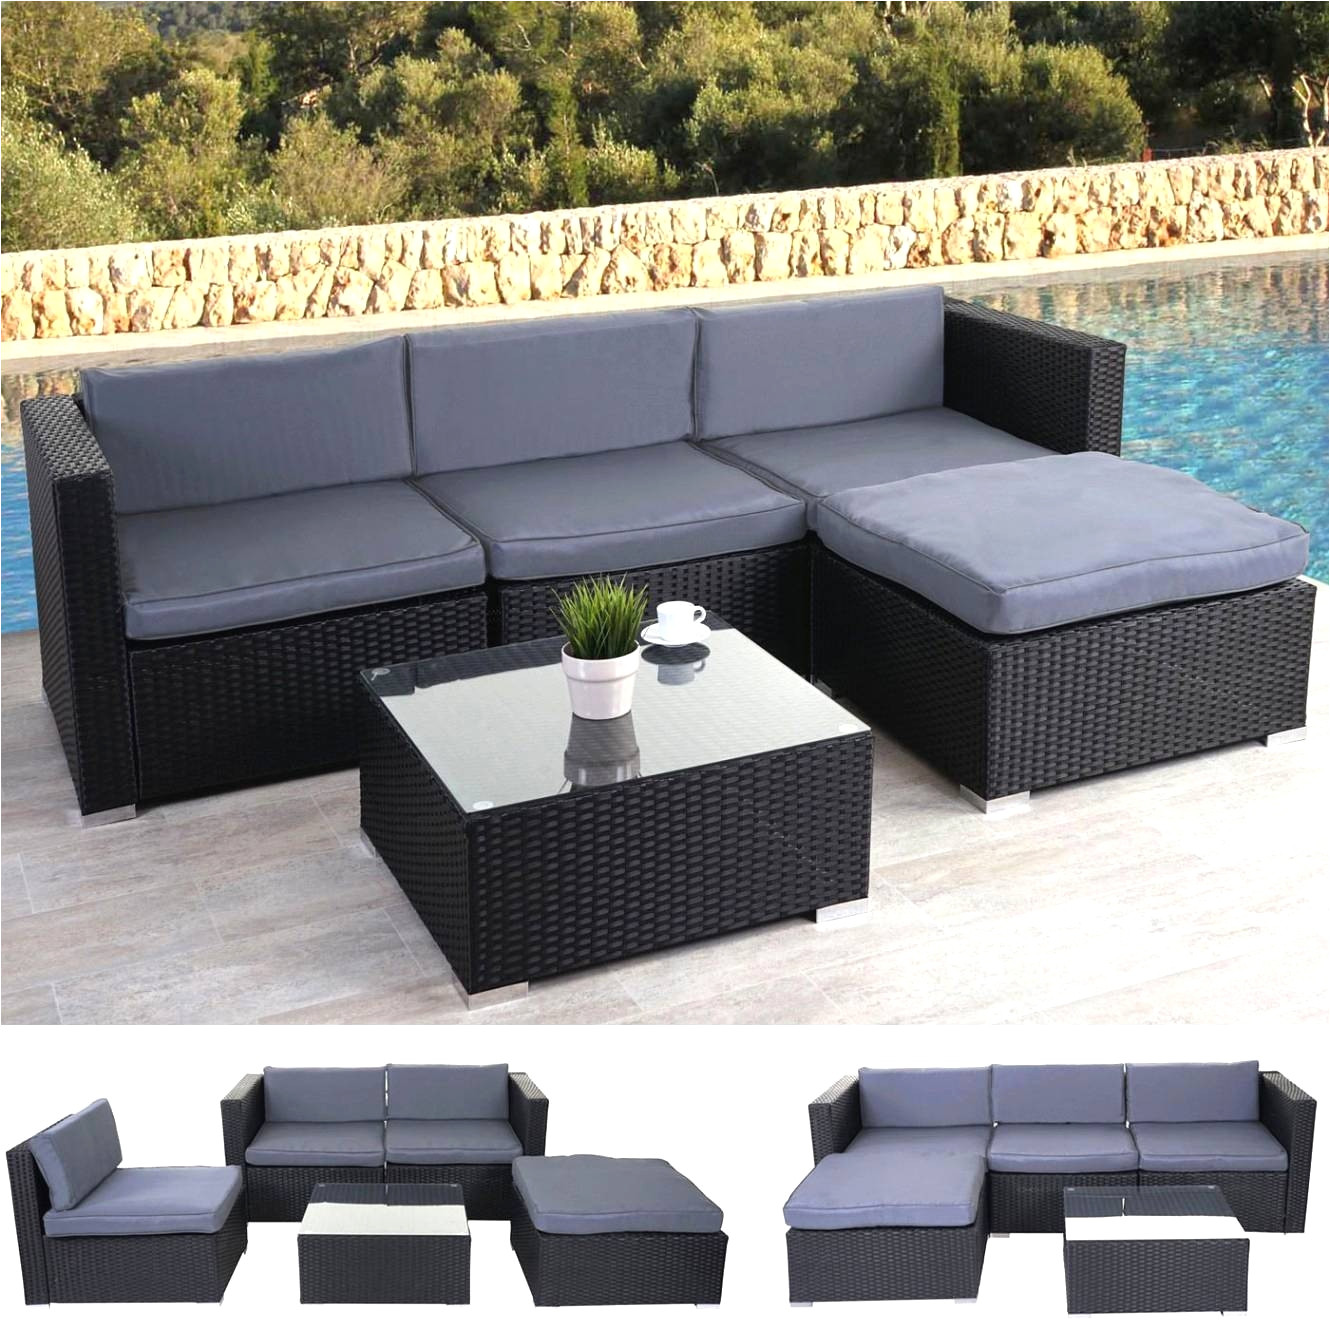 rattan sofa ausziehbar luxus lounge balkonmobel outdoor wood chair lovely lounge balkonmobel 0d